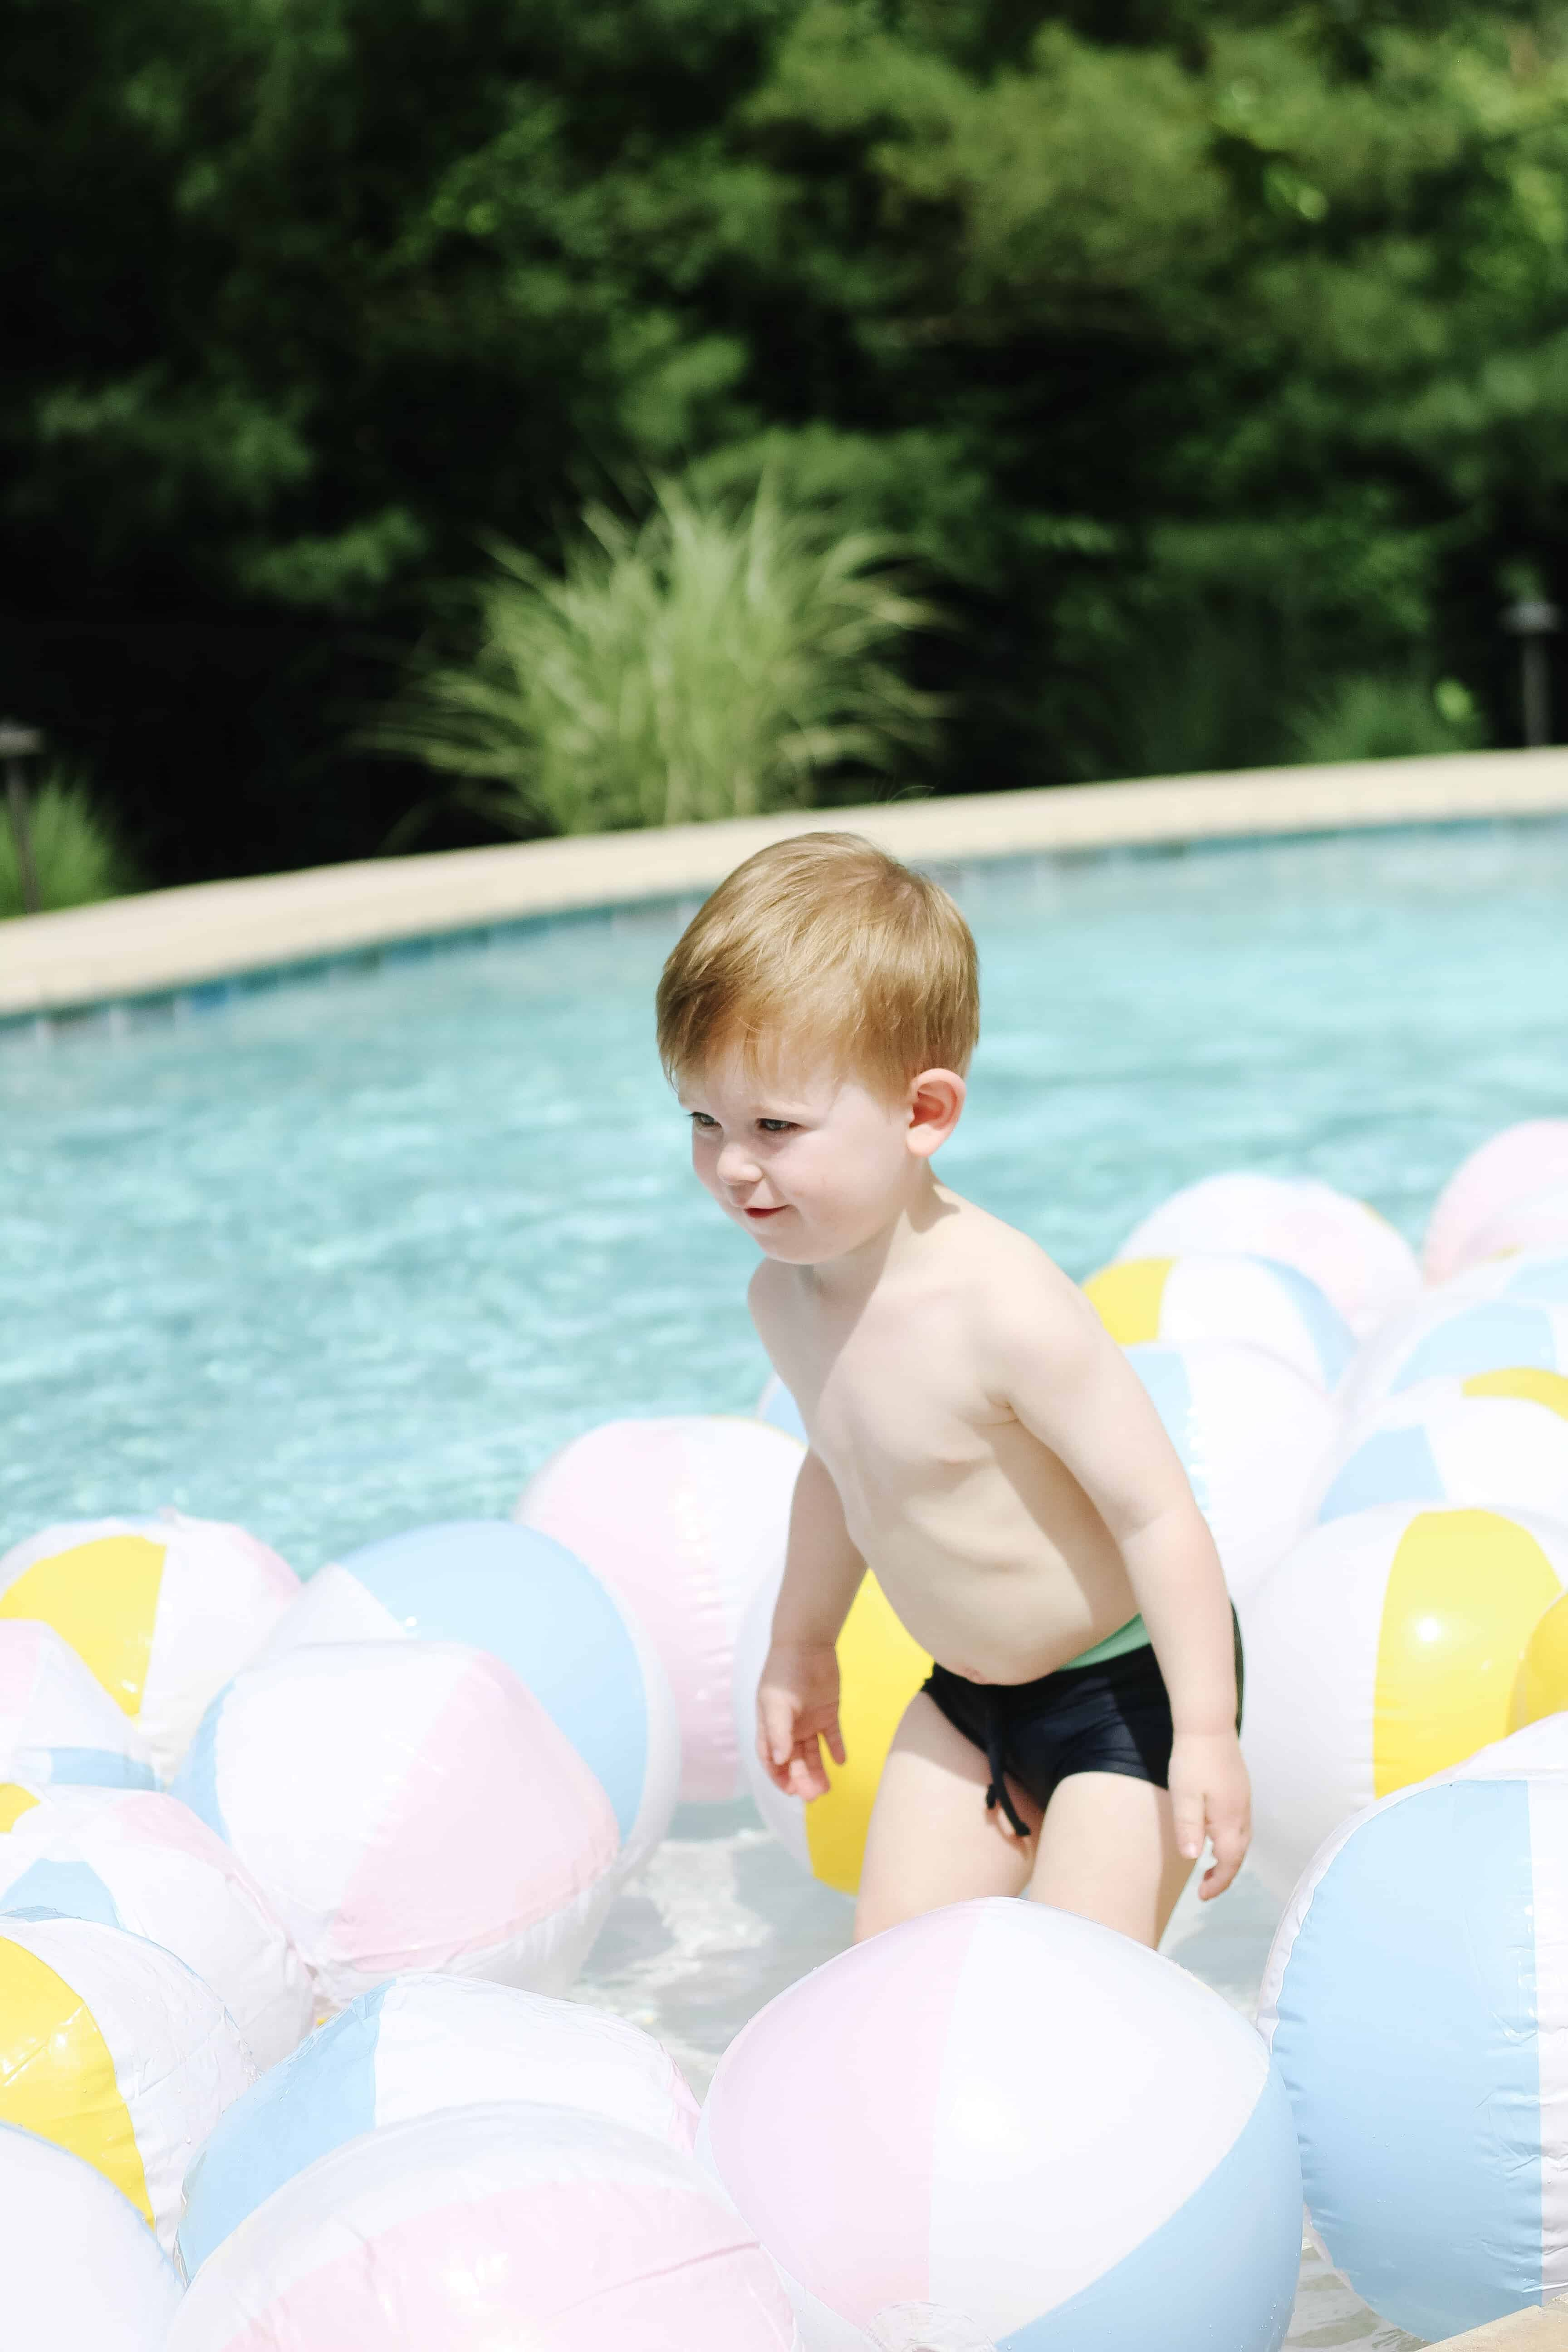 Beach ball's and a toddler in pool